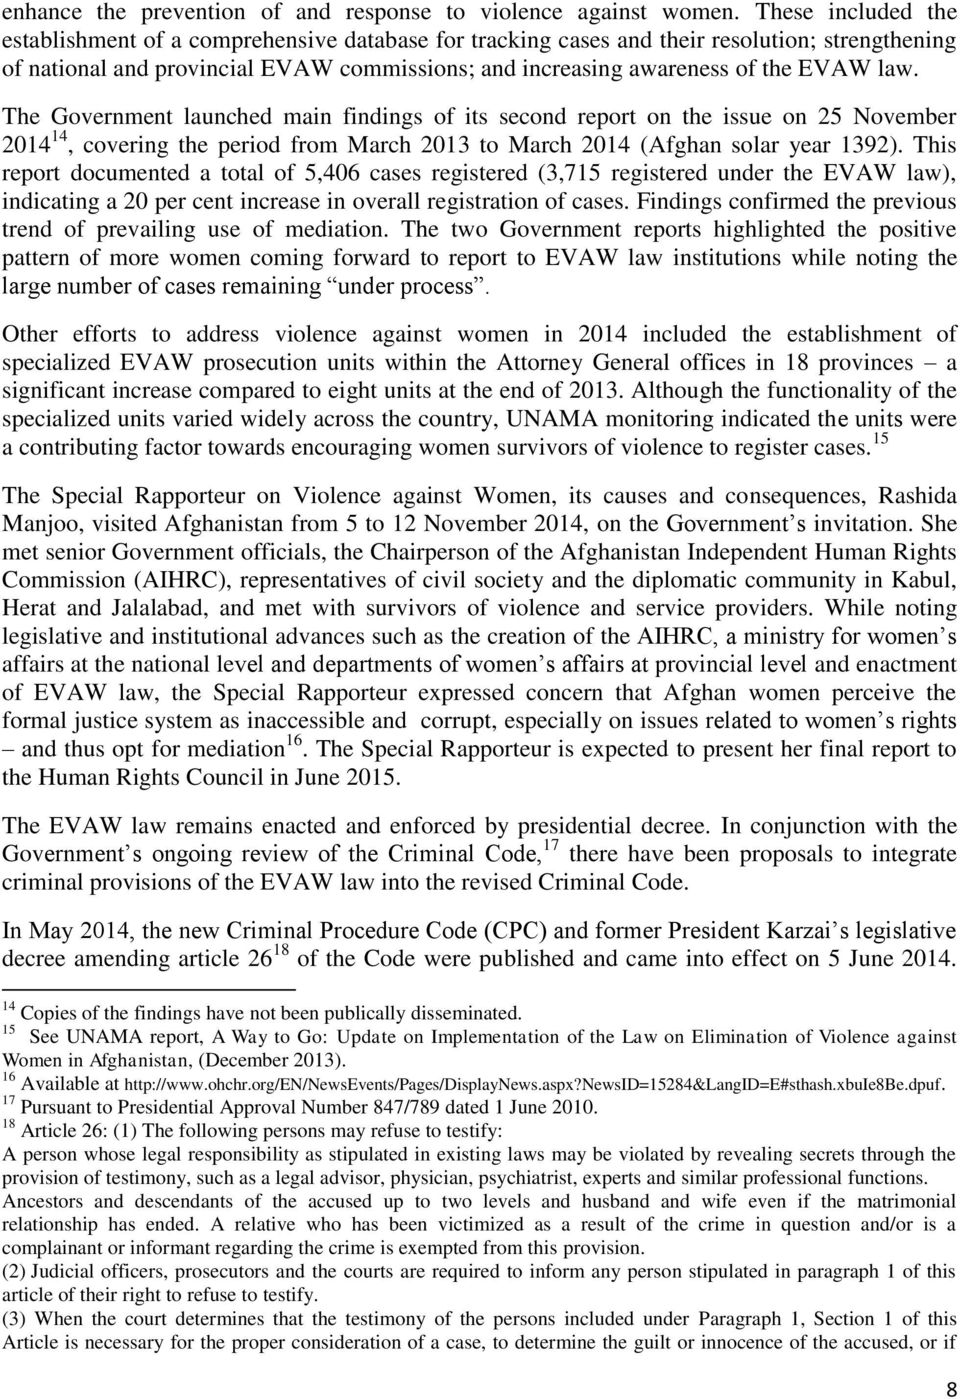 law. The Government launched main findings of its second report on the issue on 25 November 2014 14, covering the period from March 2013 to March 2014 (Afghan solar year 1392).